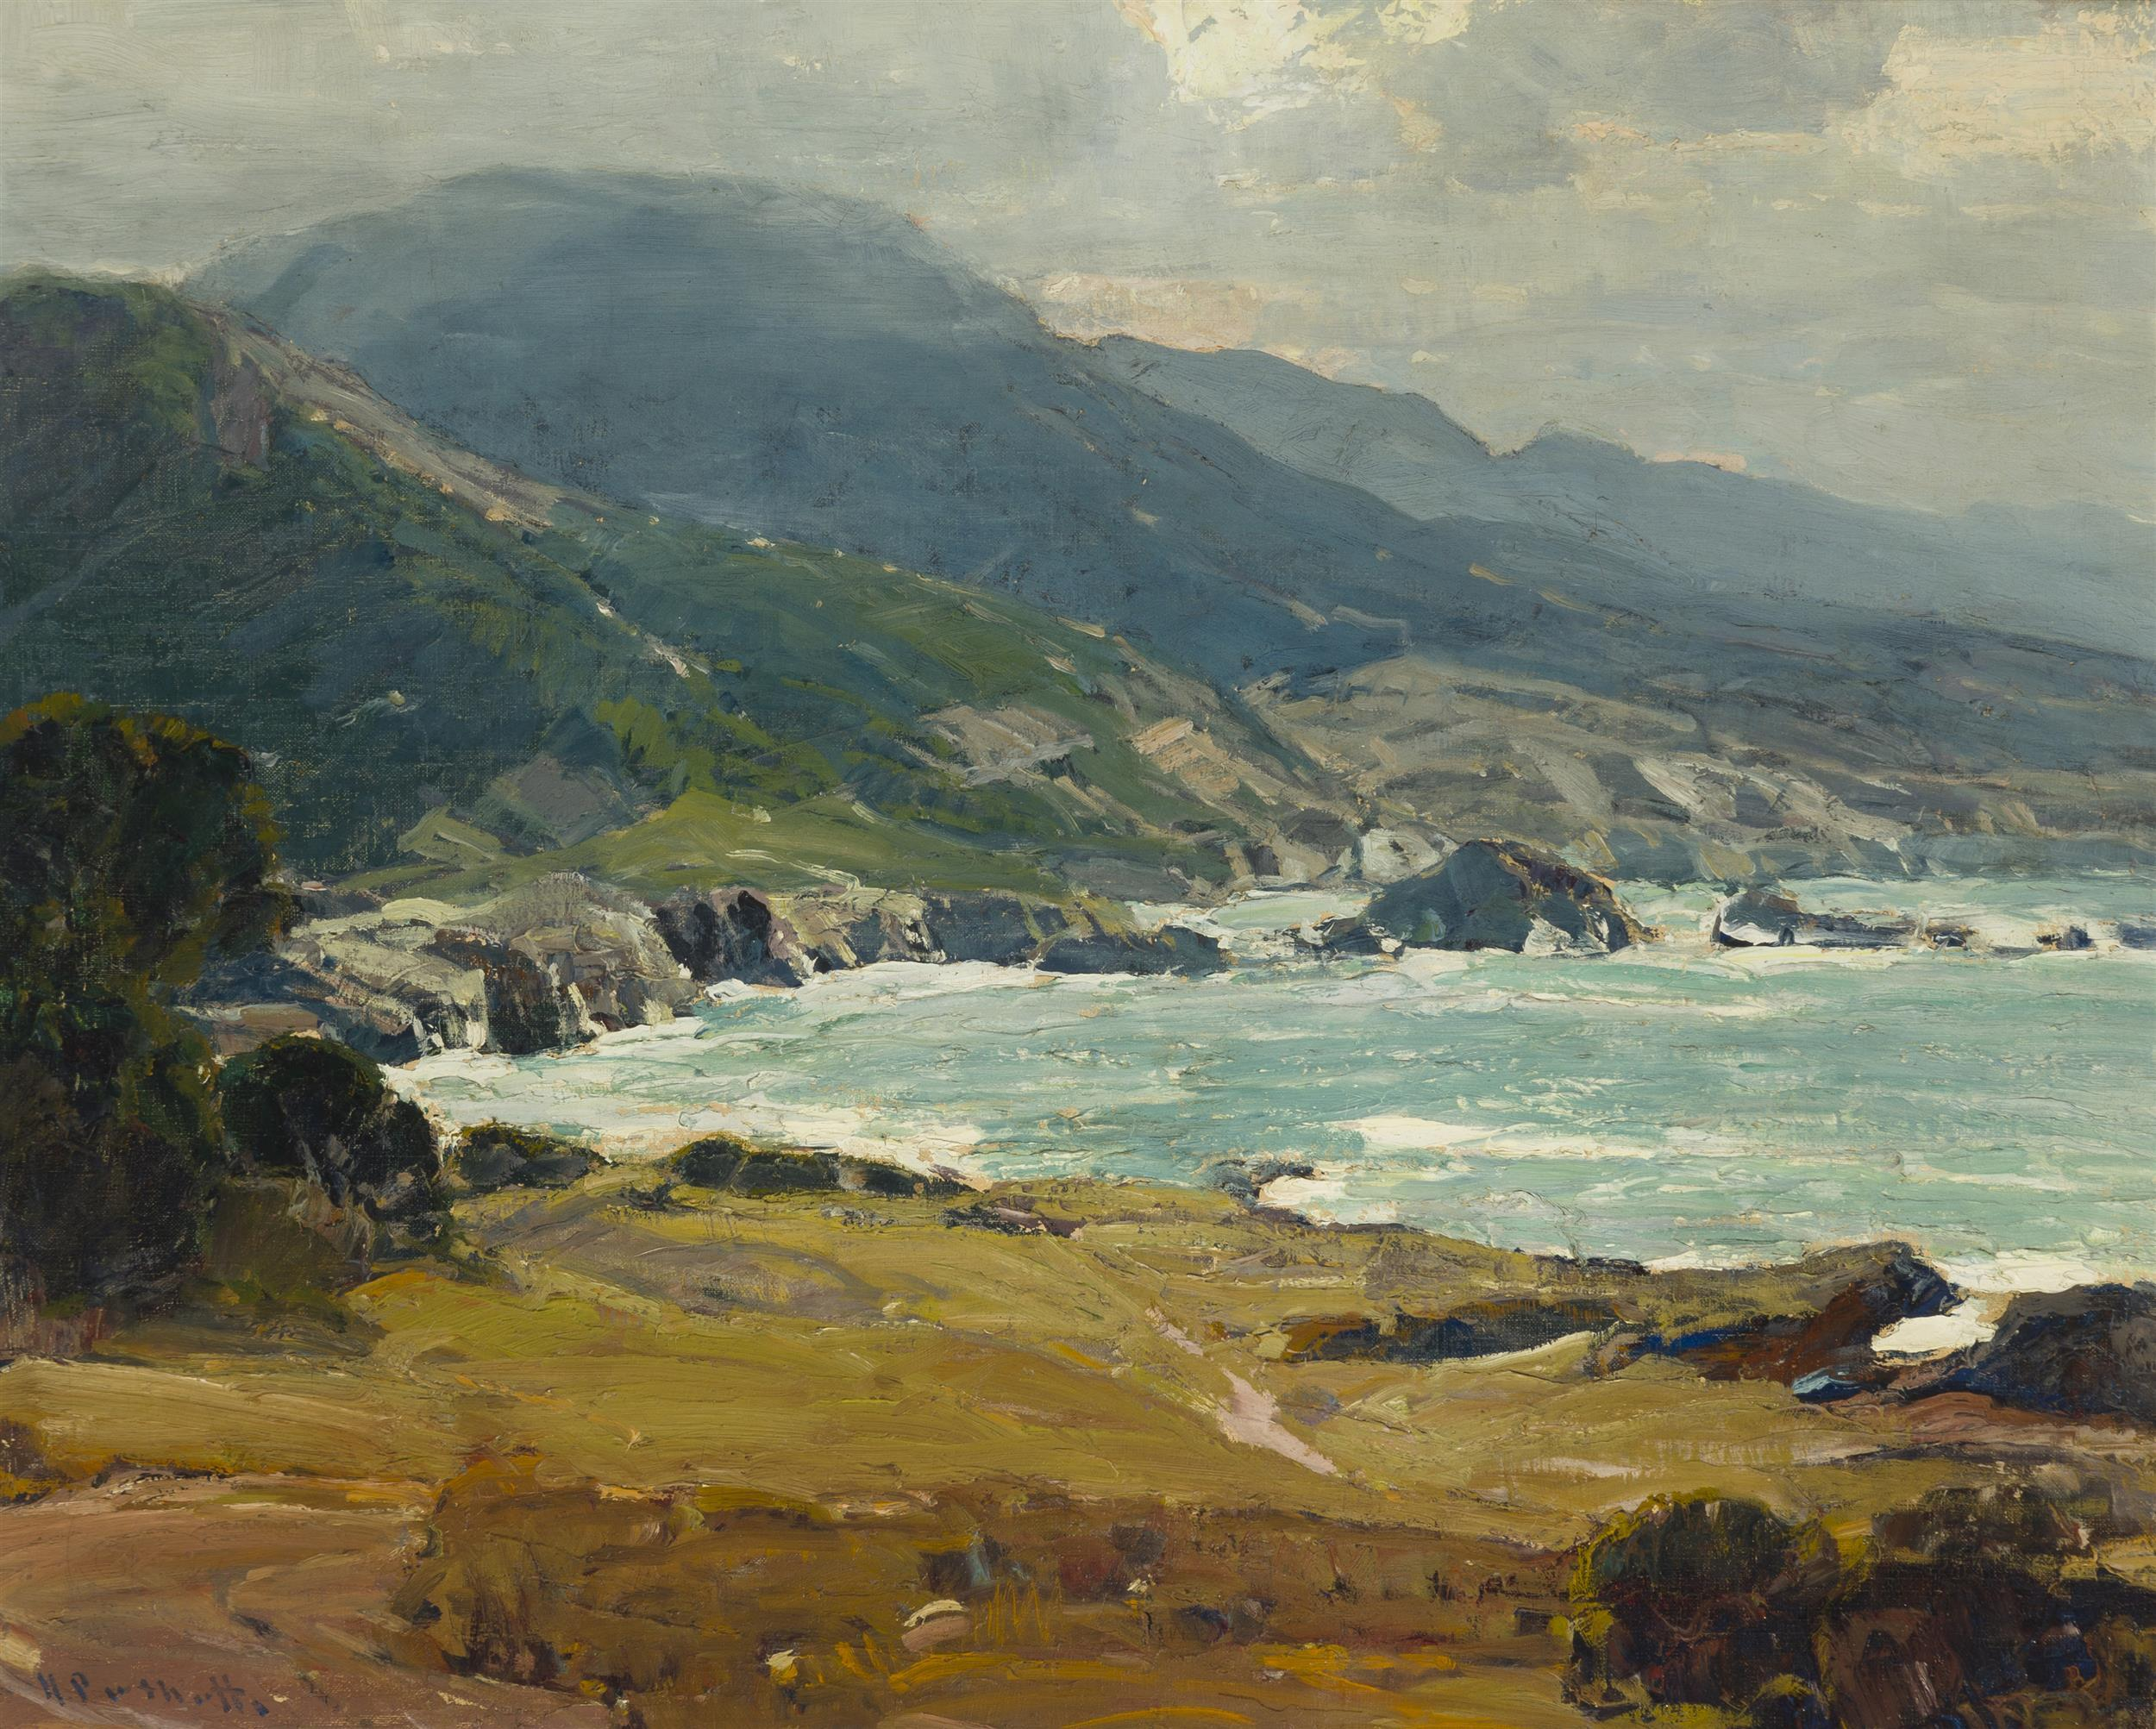 """Hanson Duvall Puthuff, (1875-1972 Corona Del Mar, CA), """"Surging Shallows"""", Oil on canvas, 24"""" H x 30"""" W"""